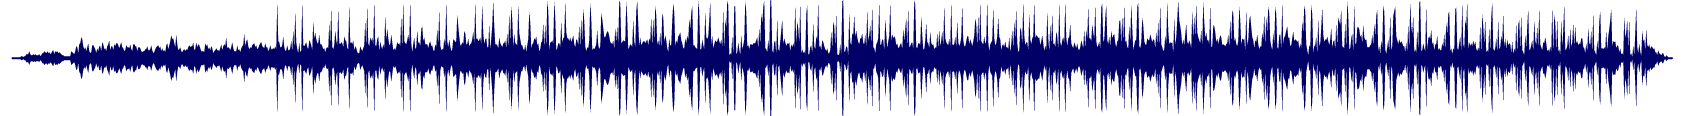 waveform of track #88722